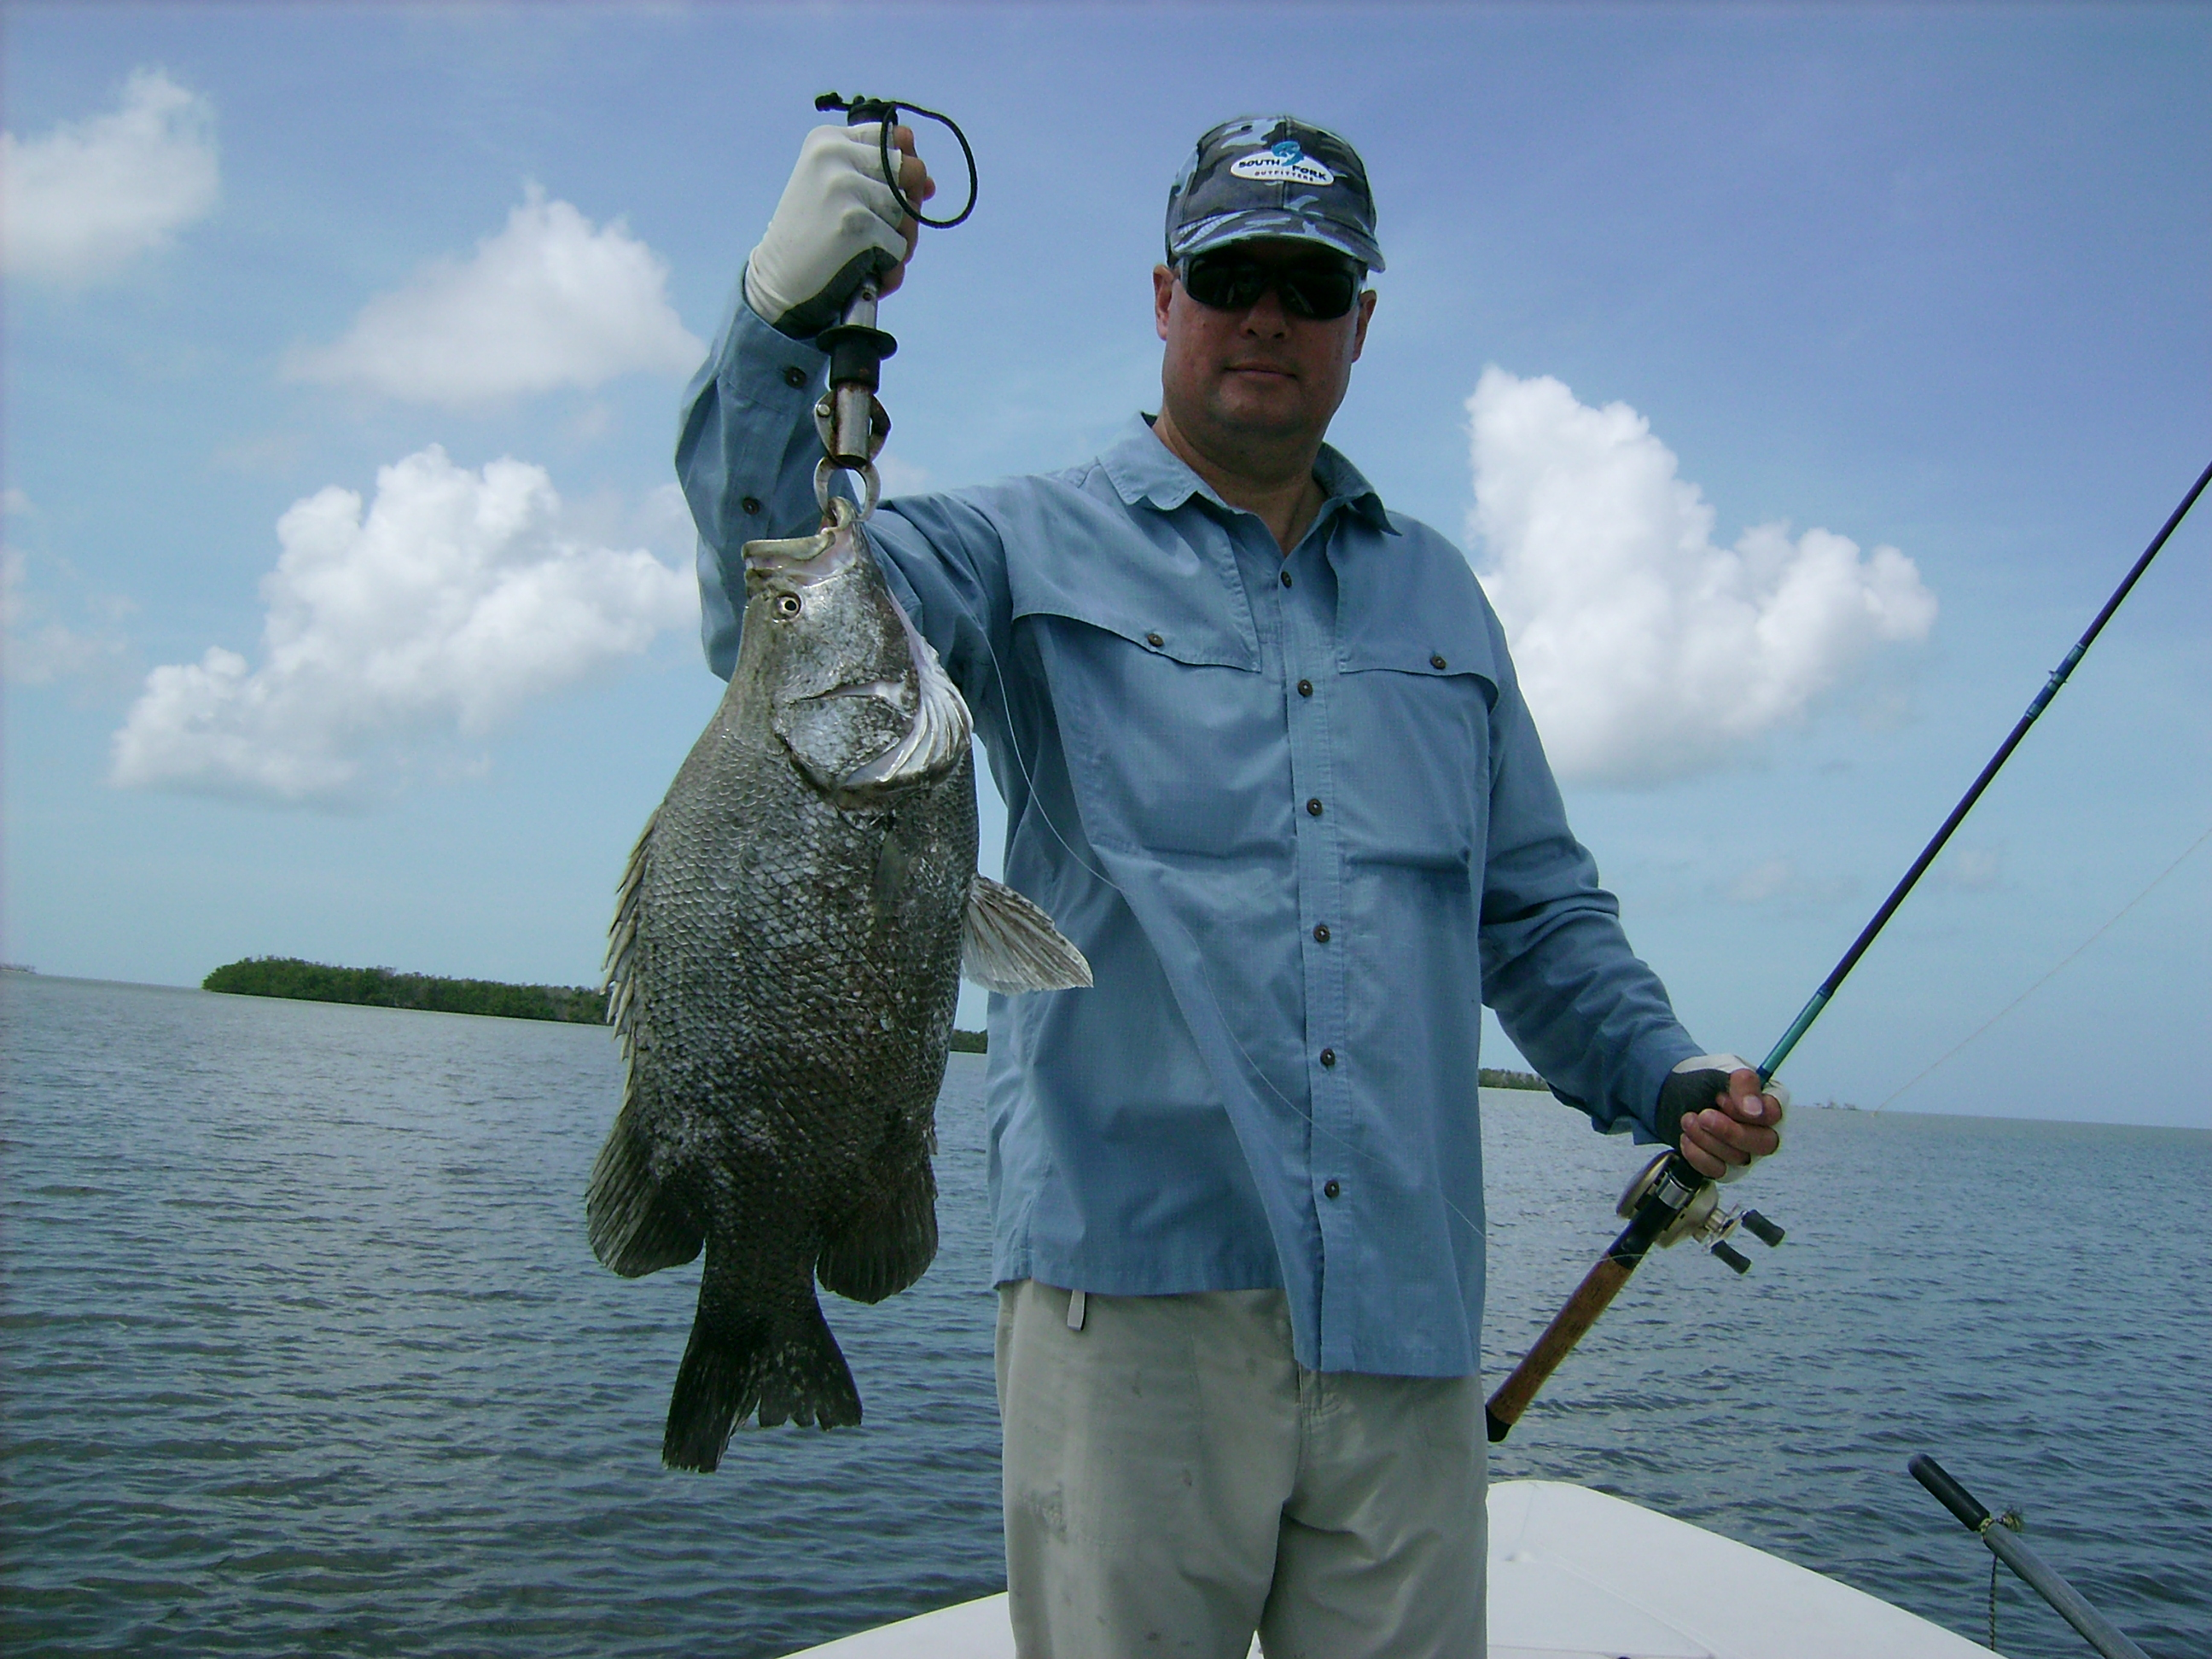 Digital camera everglades fishing for Fishing in the everglades